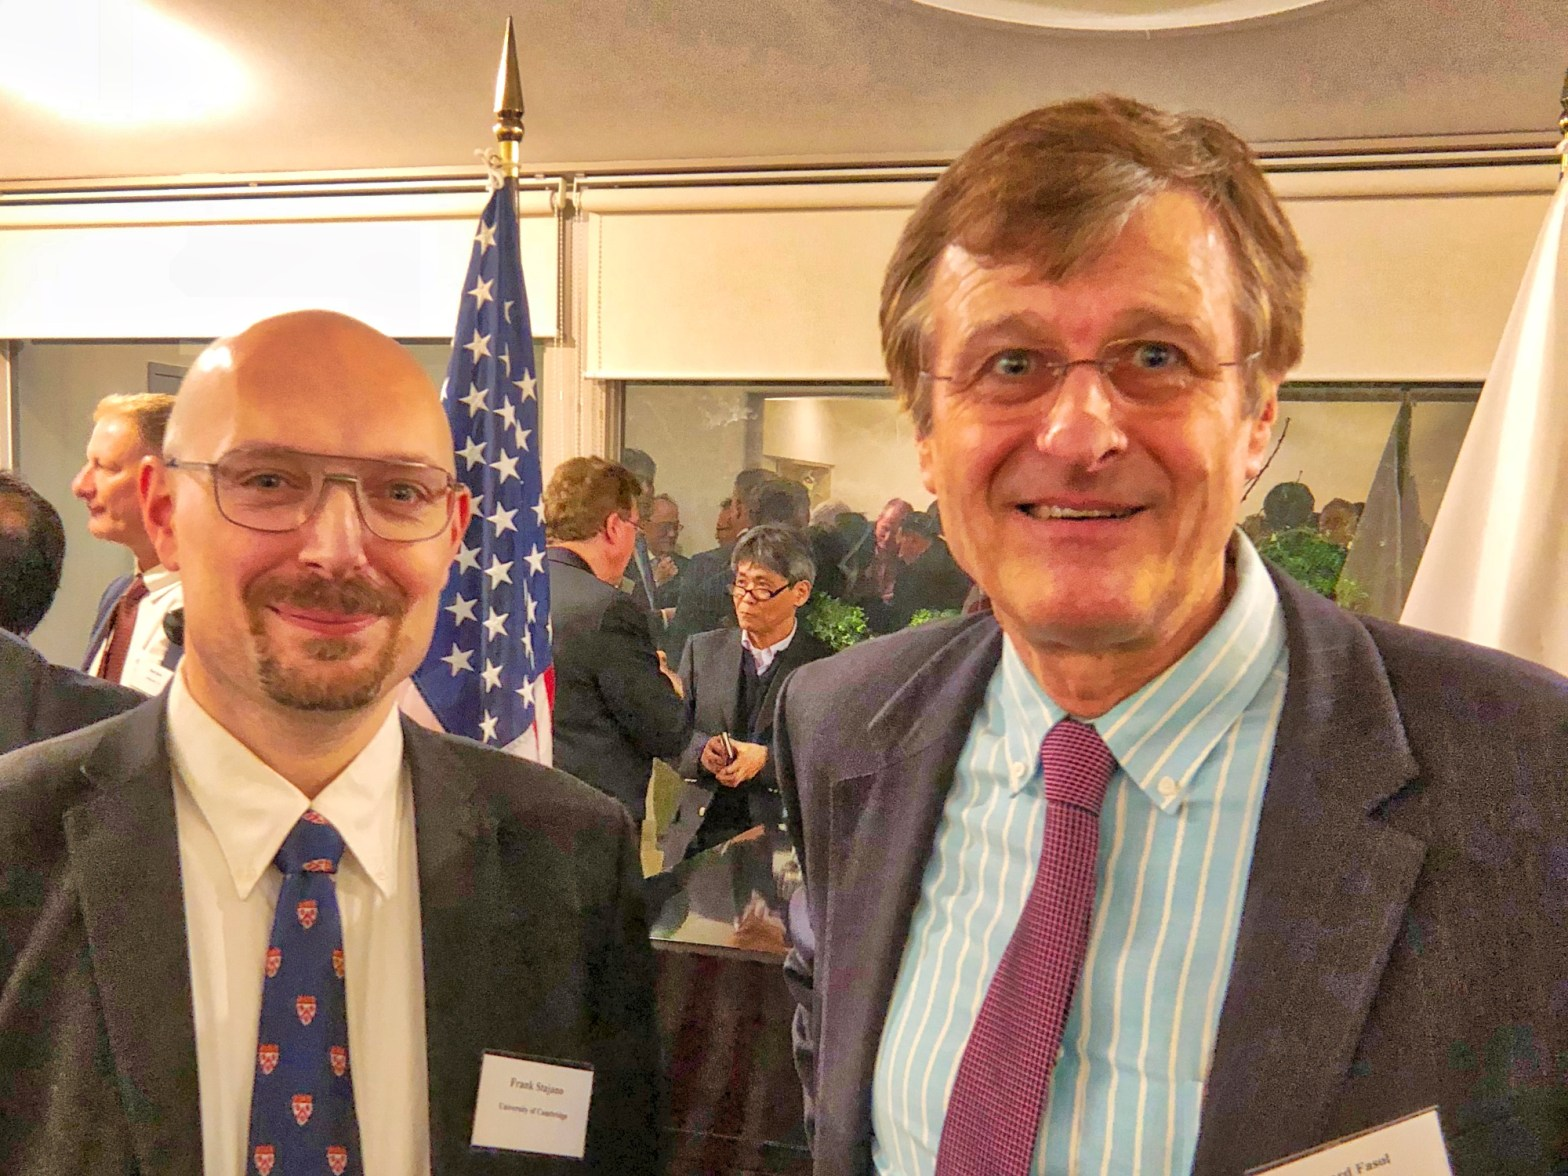 Professor Frank Stajano, Fellow, and Gerhard Fasol at the cyber security conference in Tokyo on 28 March 2018